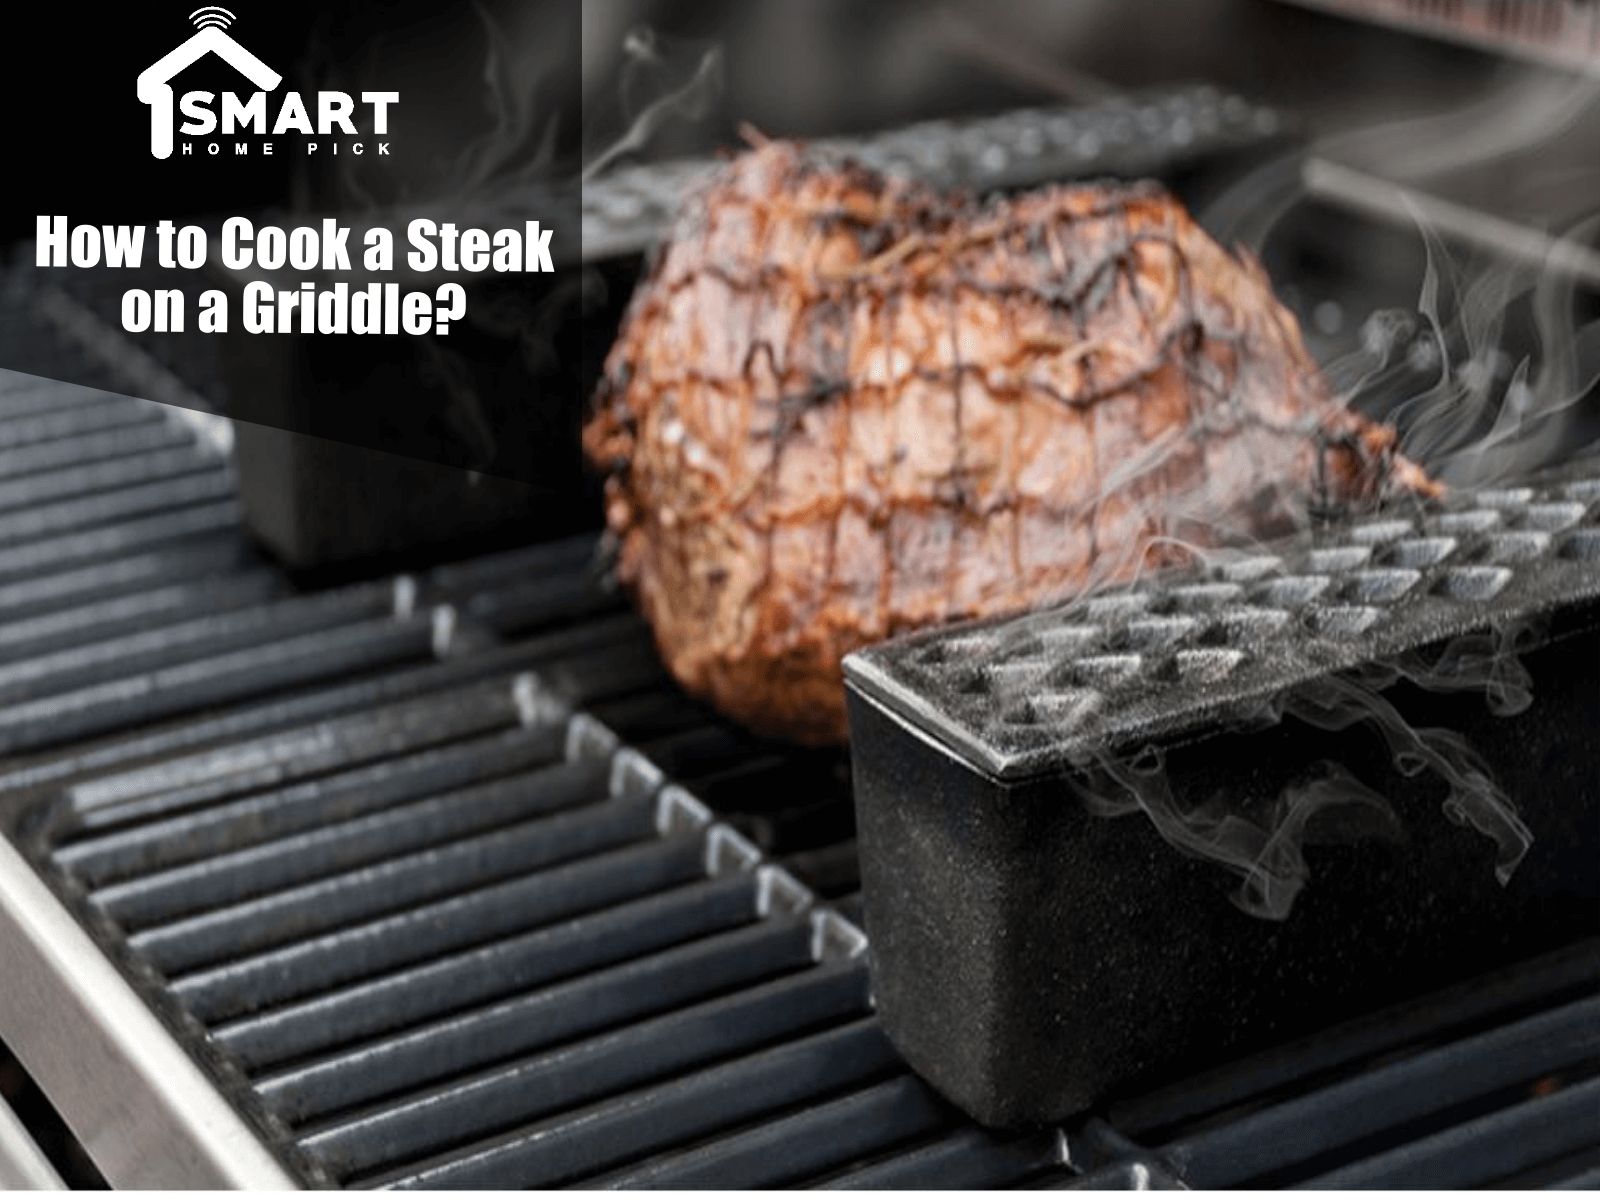 How to Cook a Steak on a Griddle